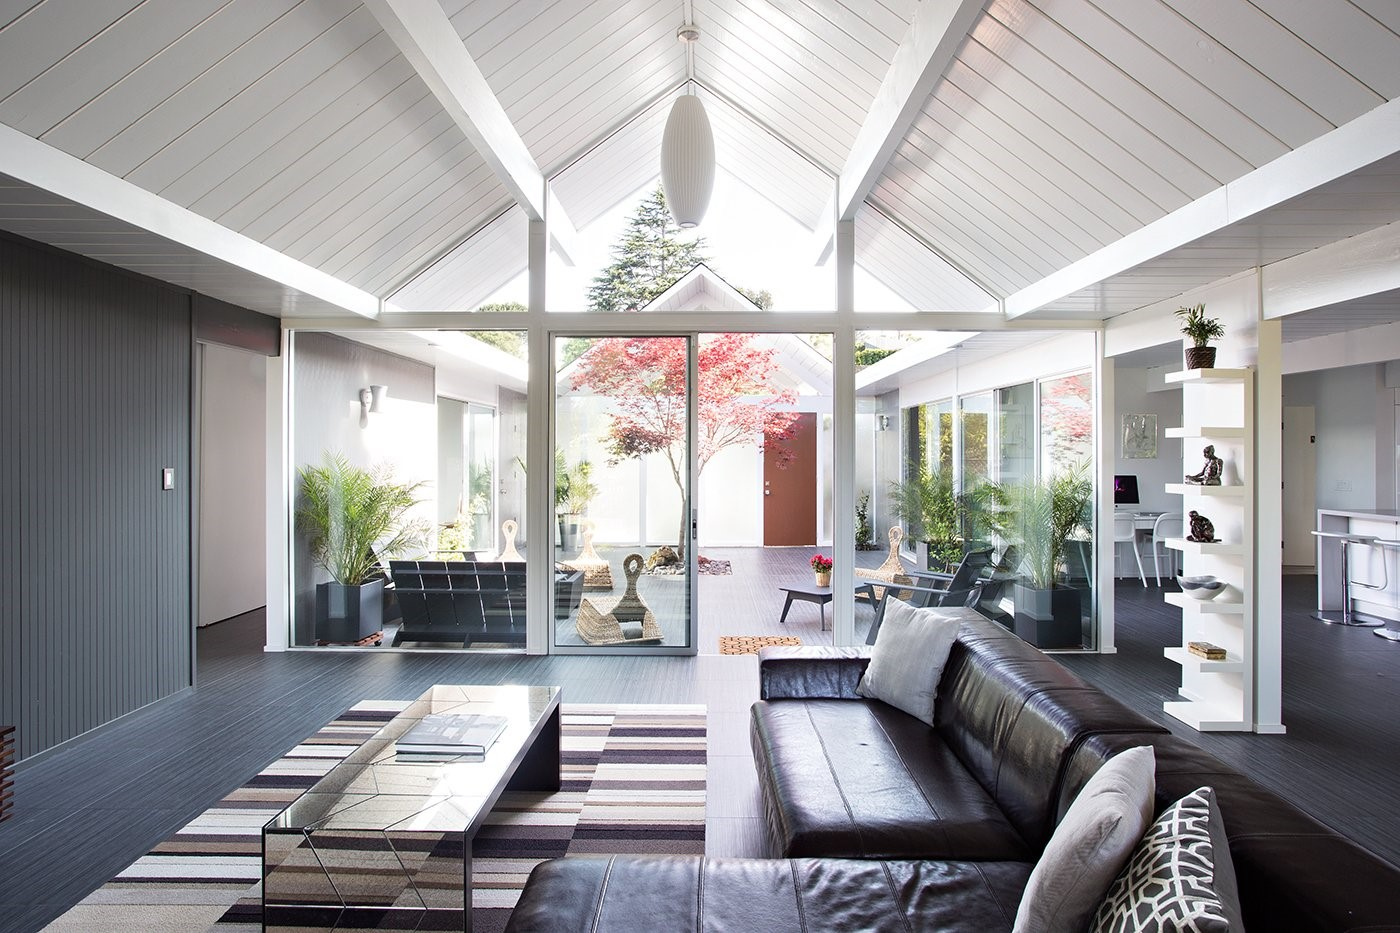 Renovated Eichler home in California - with lots of glass